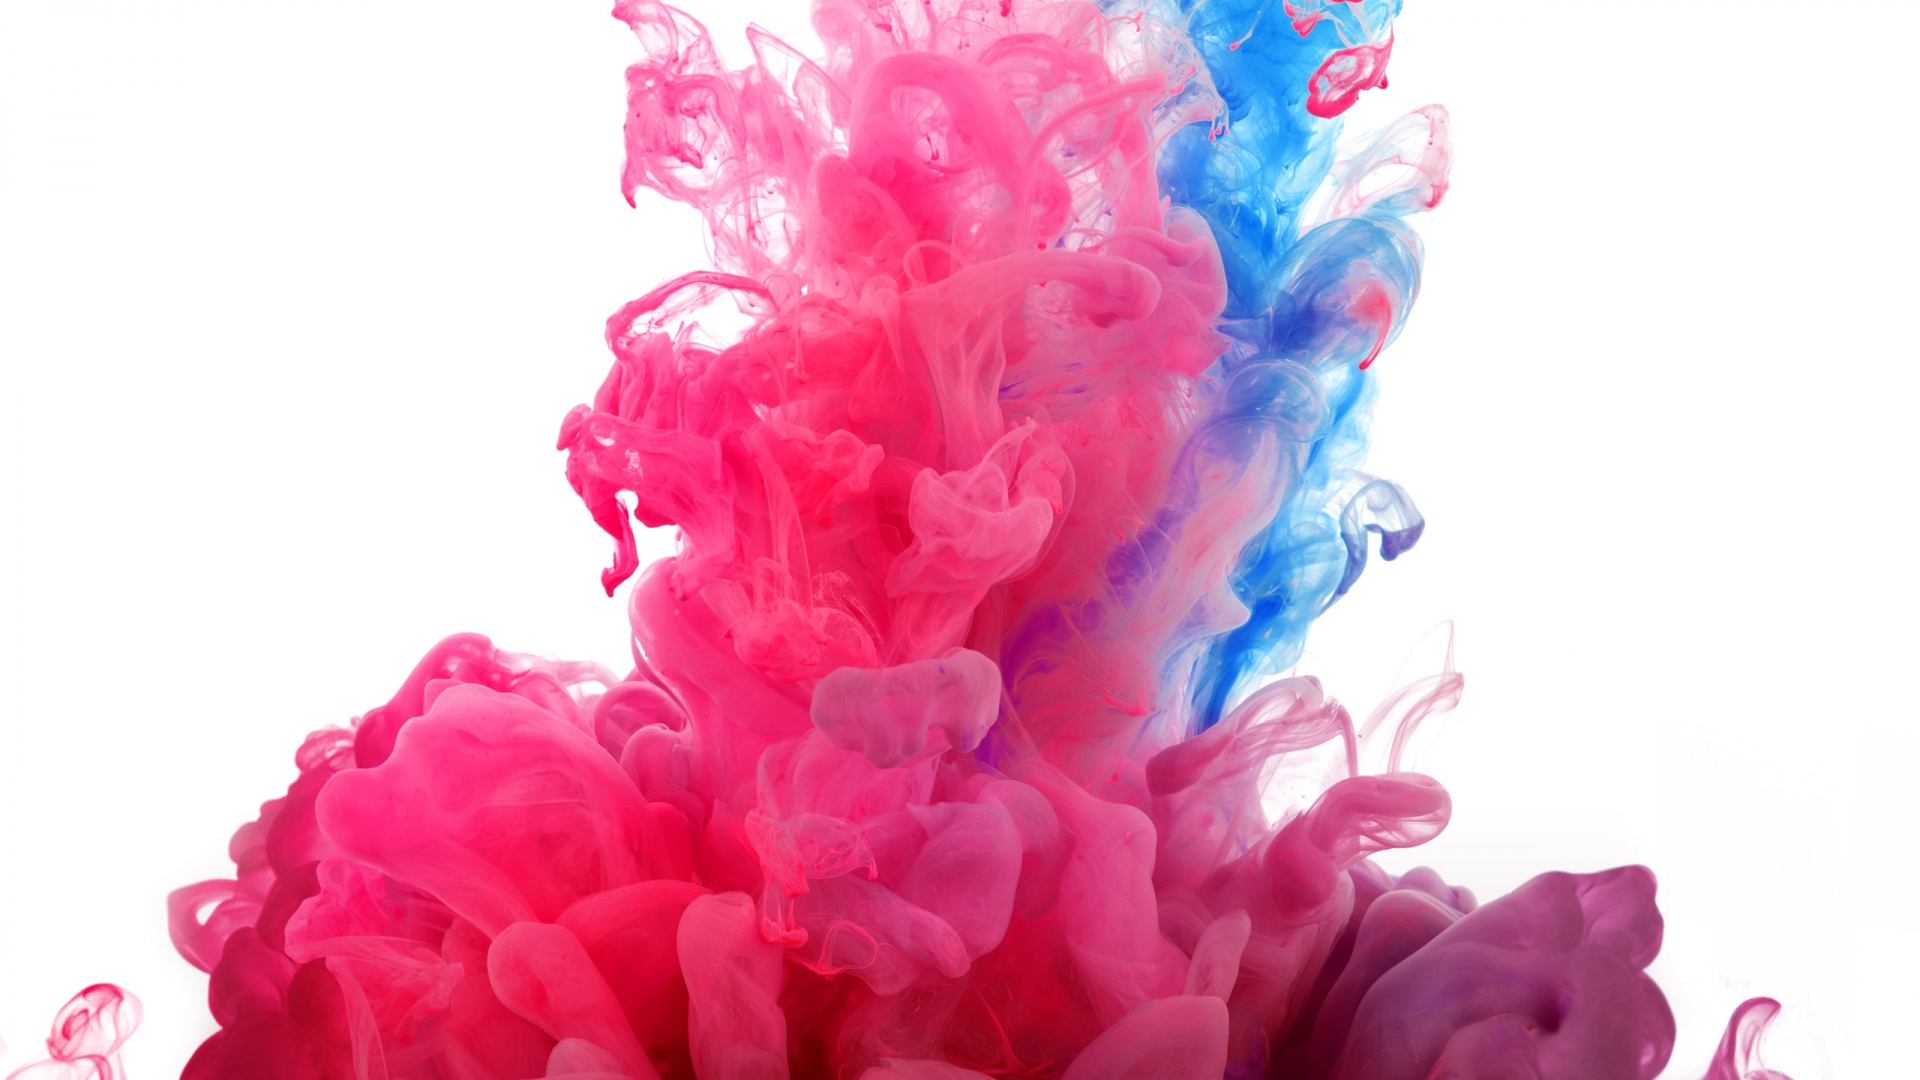 Lg Animated Wallpaper Lg G3 Smoke Colors Wallpapers In Jpg Format For Free Download